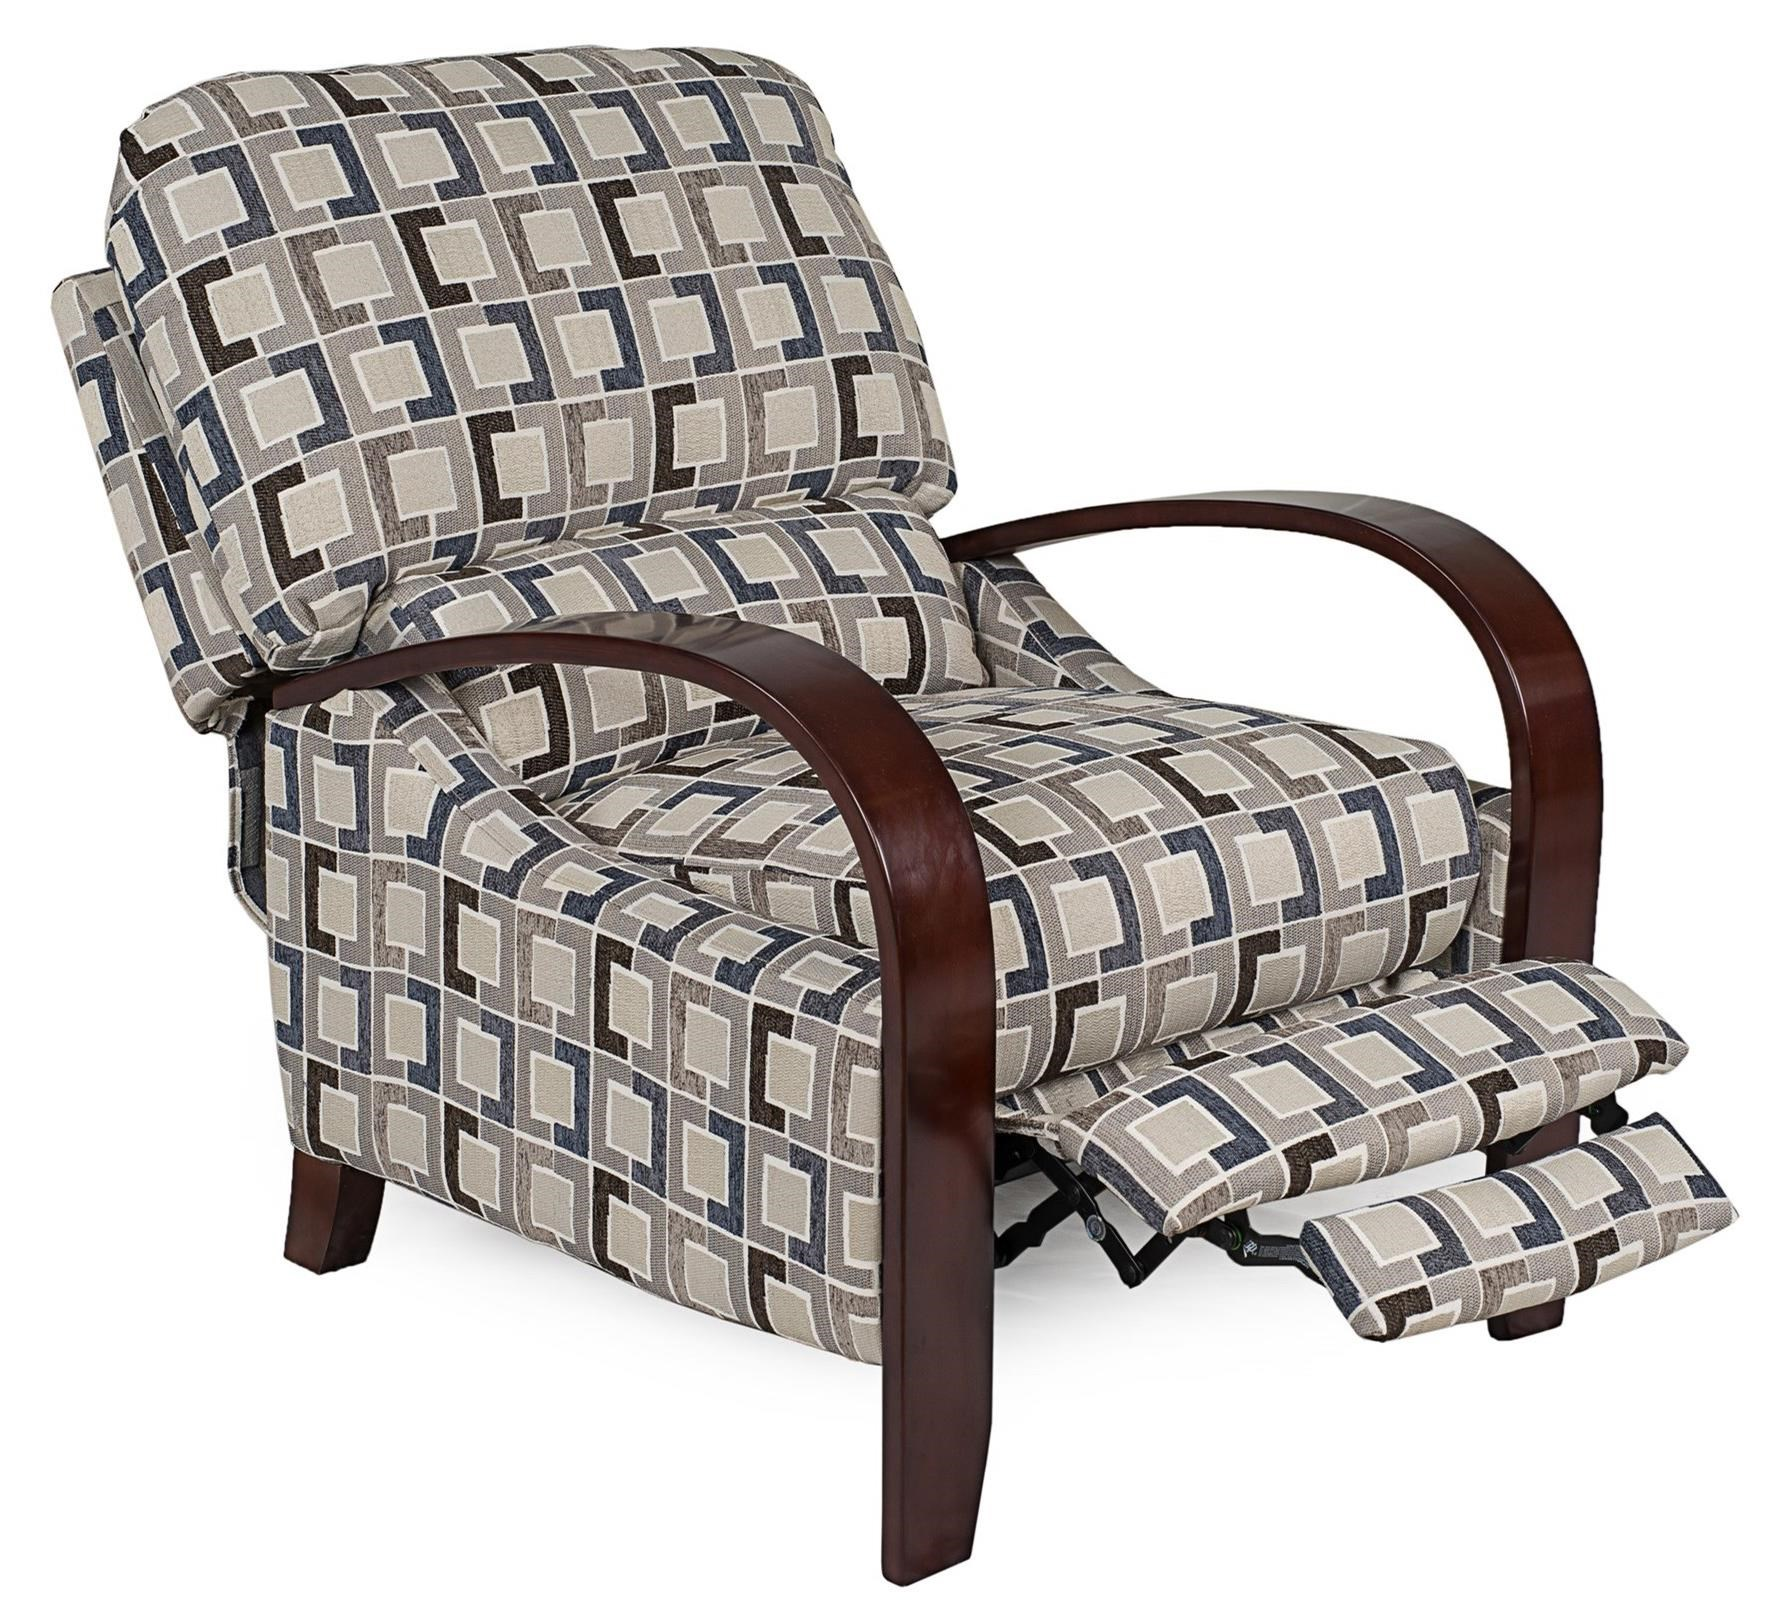 synergy recliner chair desk west elm home furnishings 997 86 contemporary